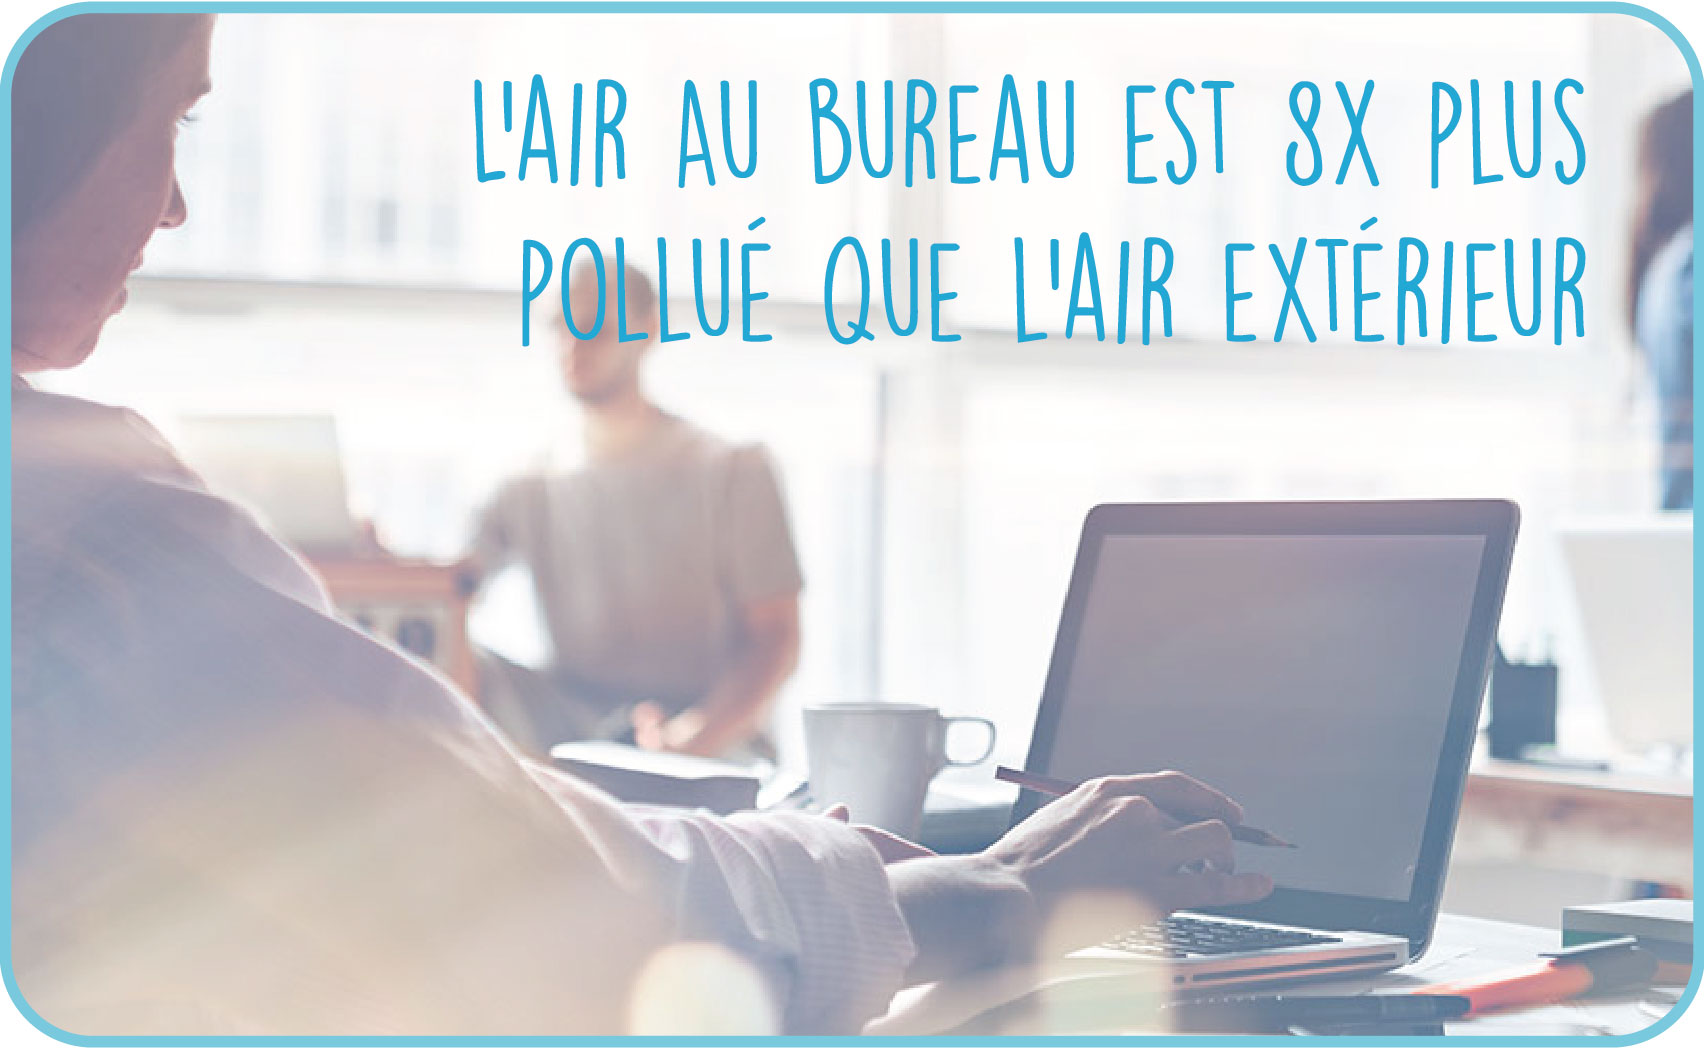 qualité de l'air au bureau